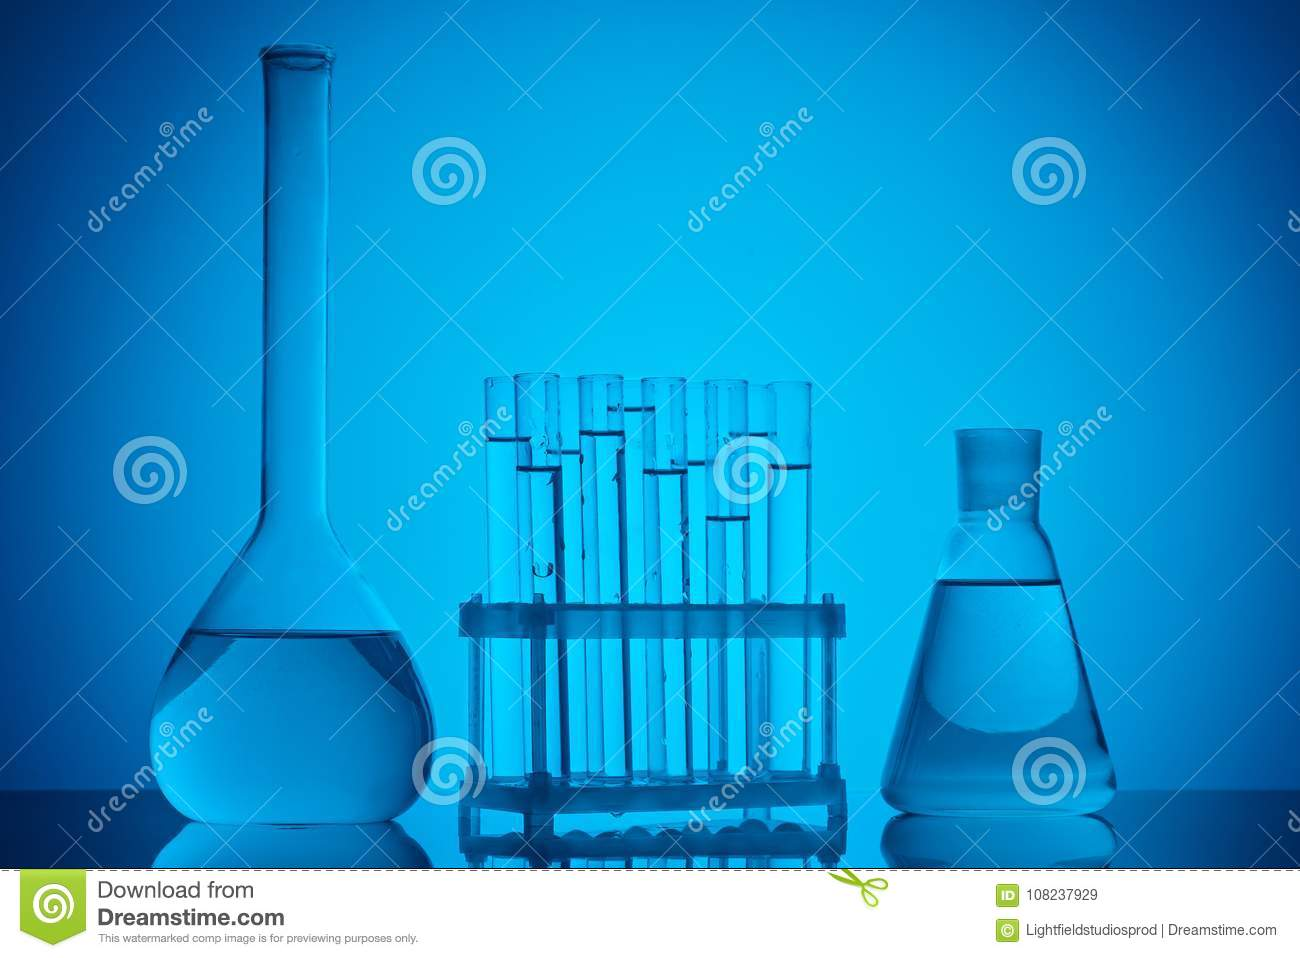 Glass tubes on stand and glass flasks with liquid on table